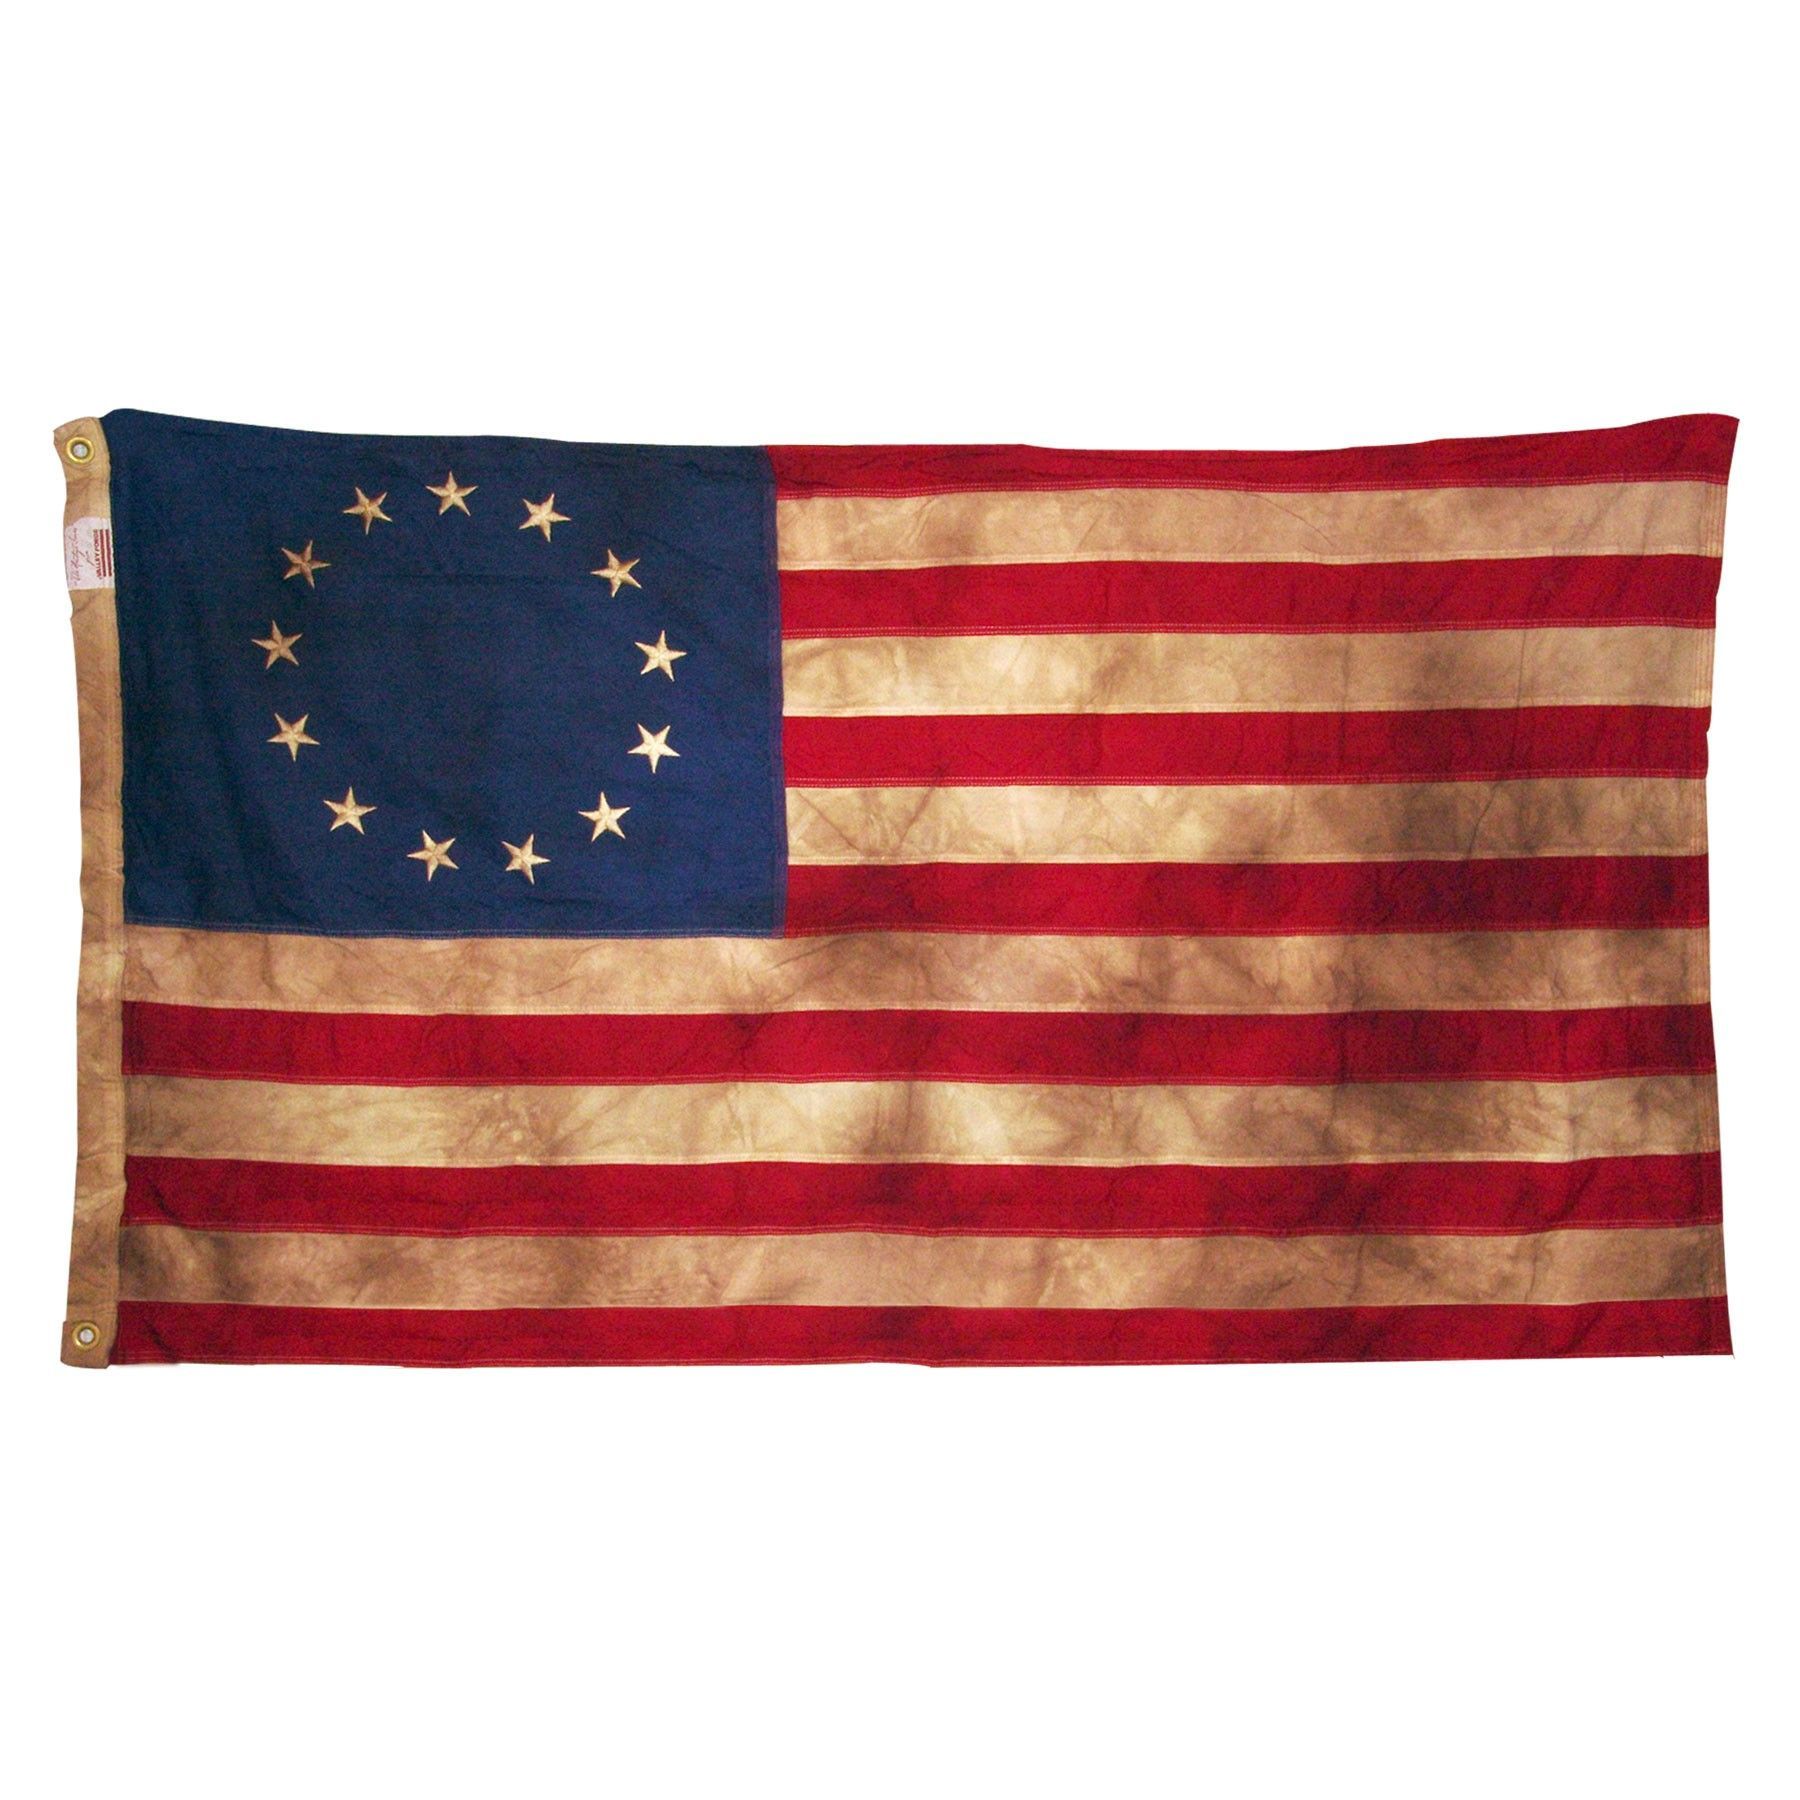 Usa35ercbr 00 Usa First Stars And Stripes Heritage Series By Valley Forge Jpg 1 800 1 800 Pixels American Flag Cotton Flag Outdoor Flags